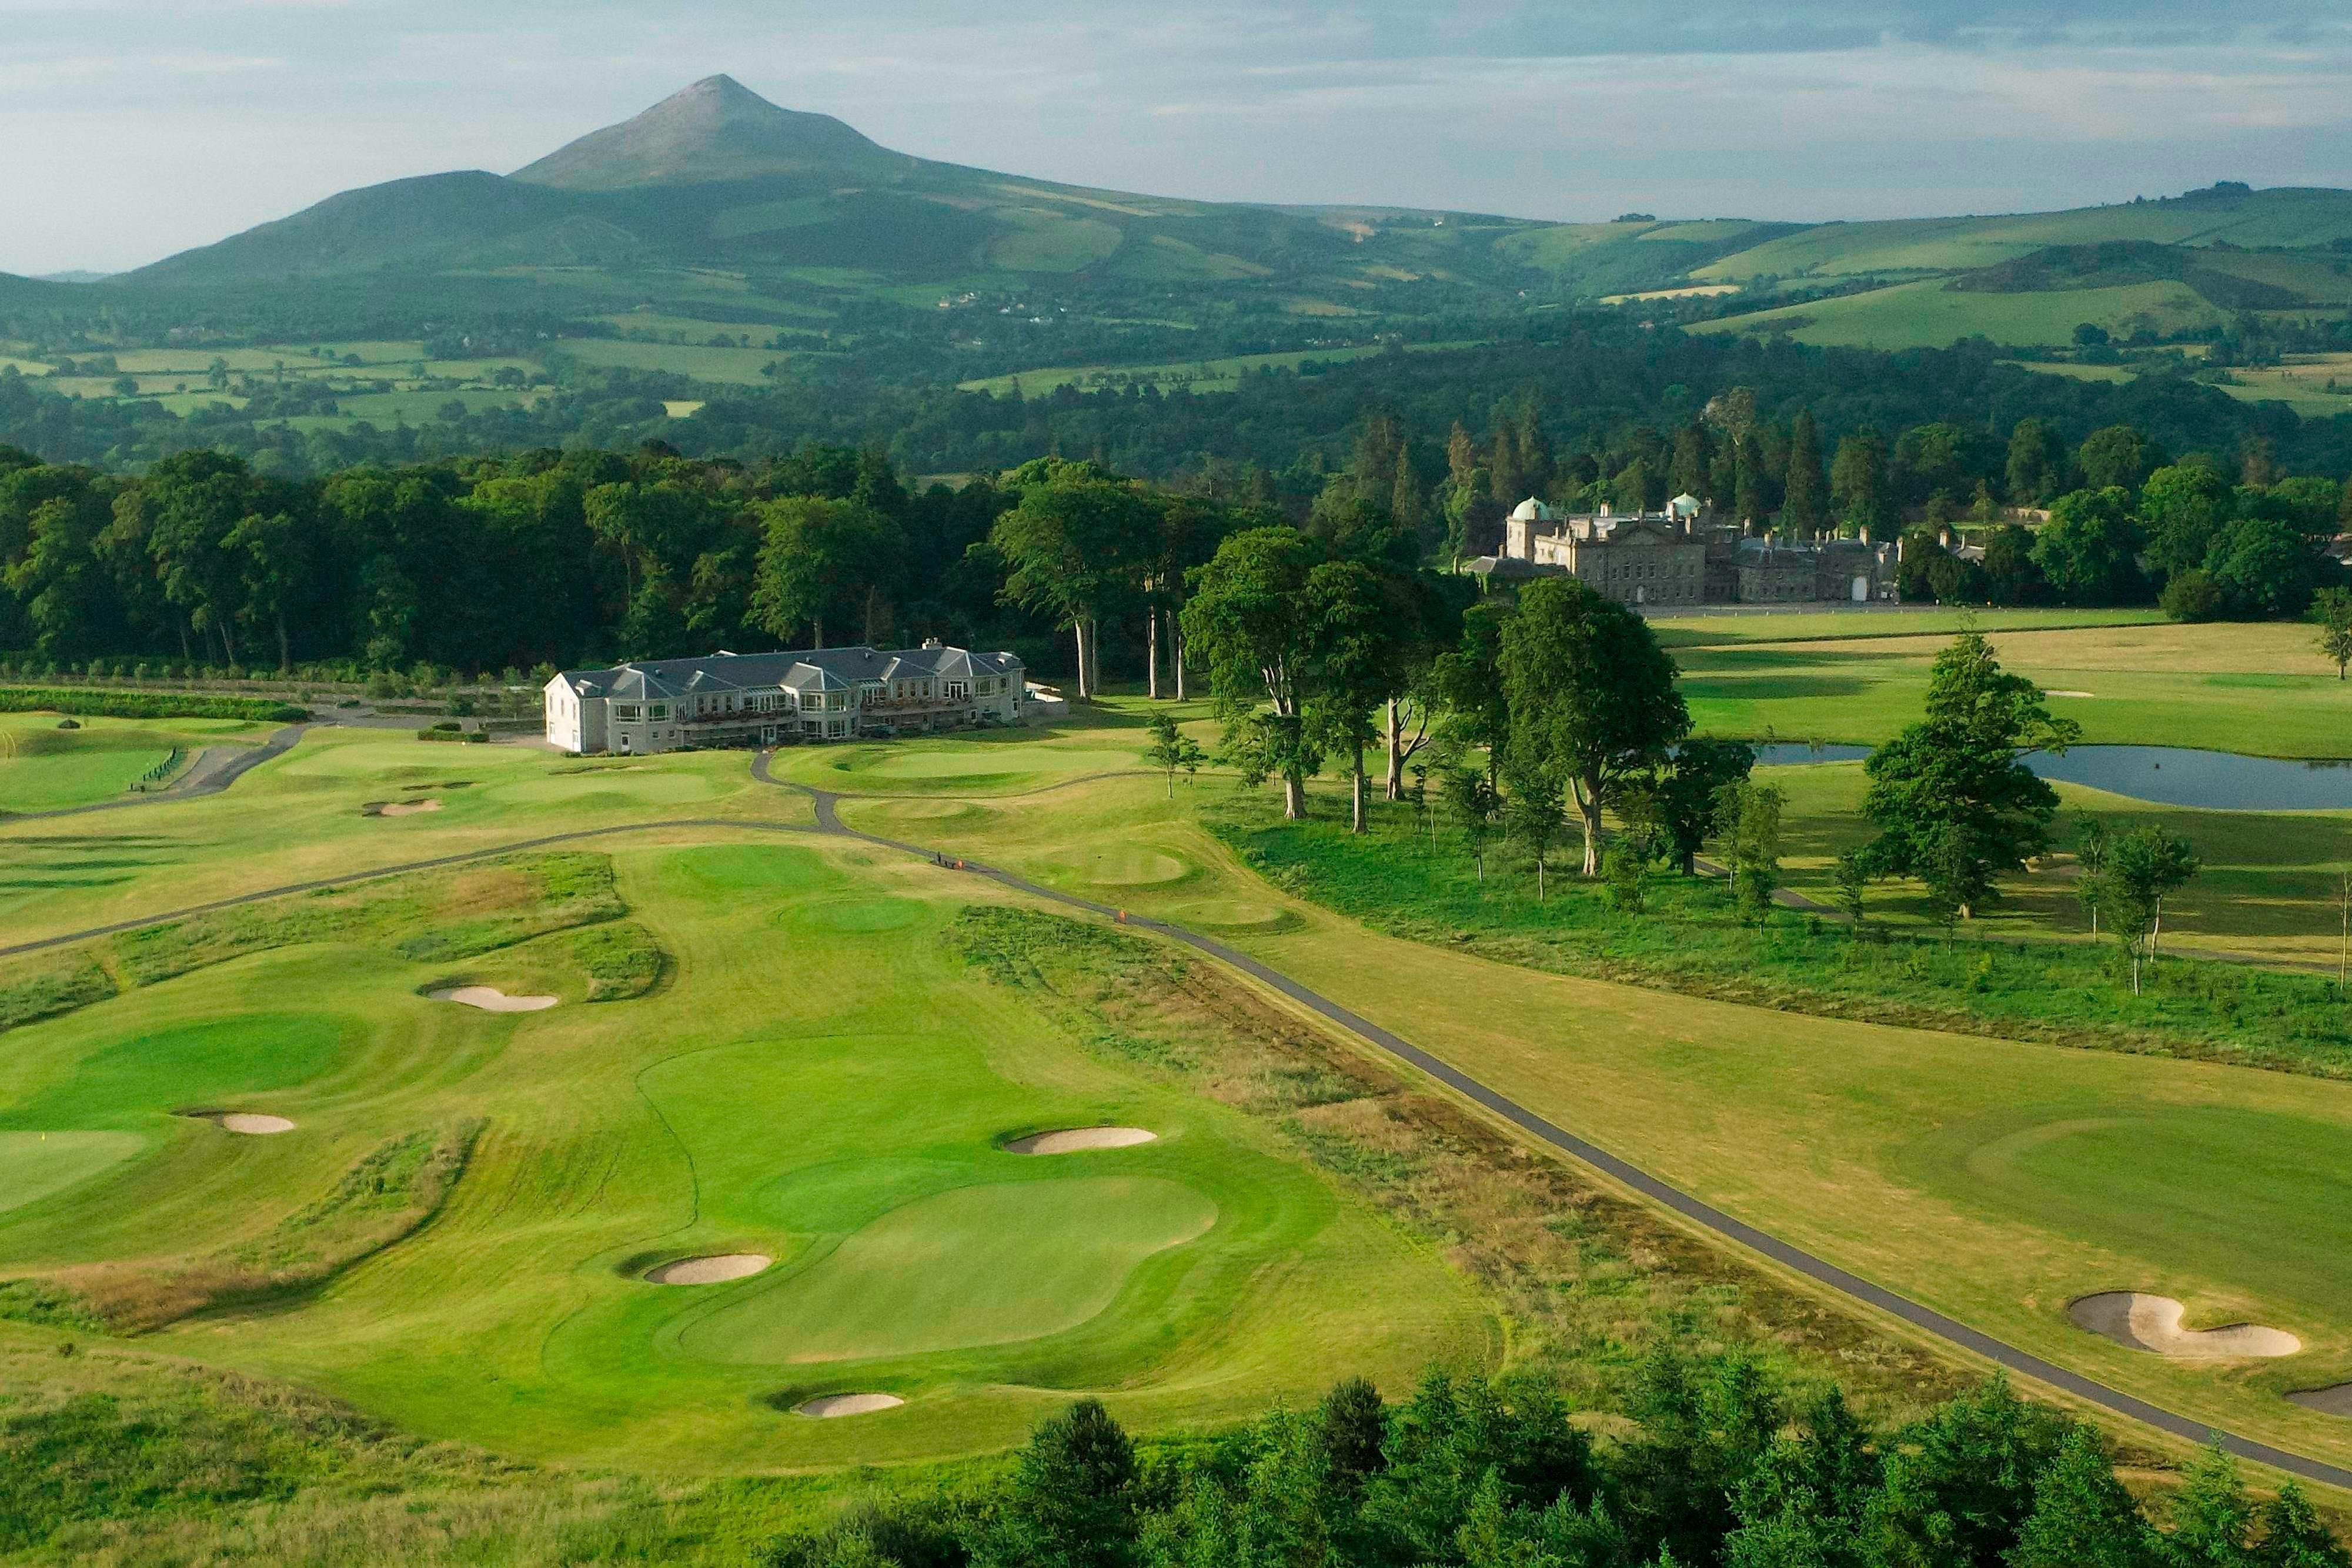 Championship golf course Powerscourt